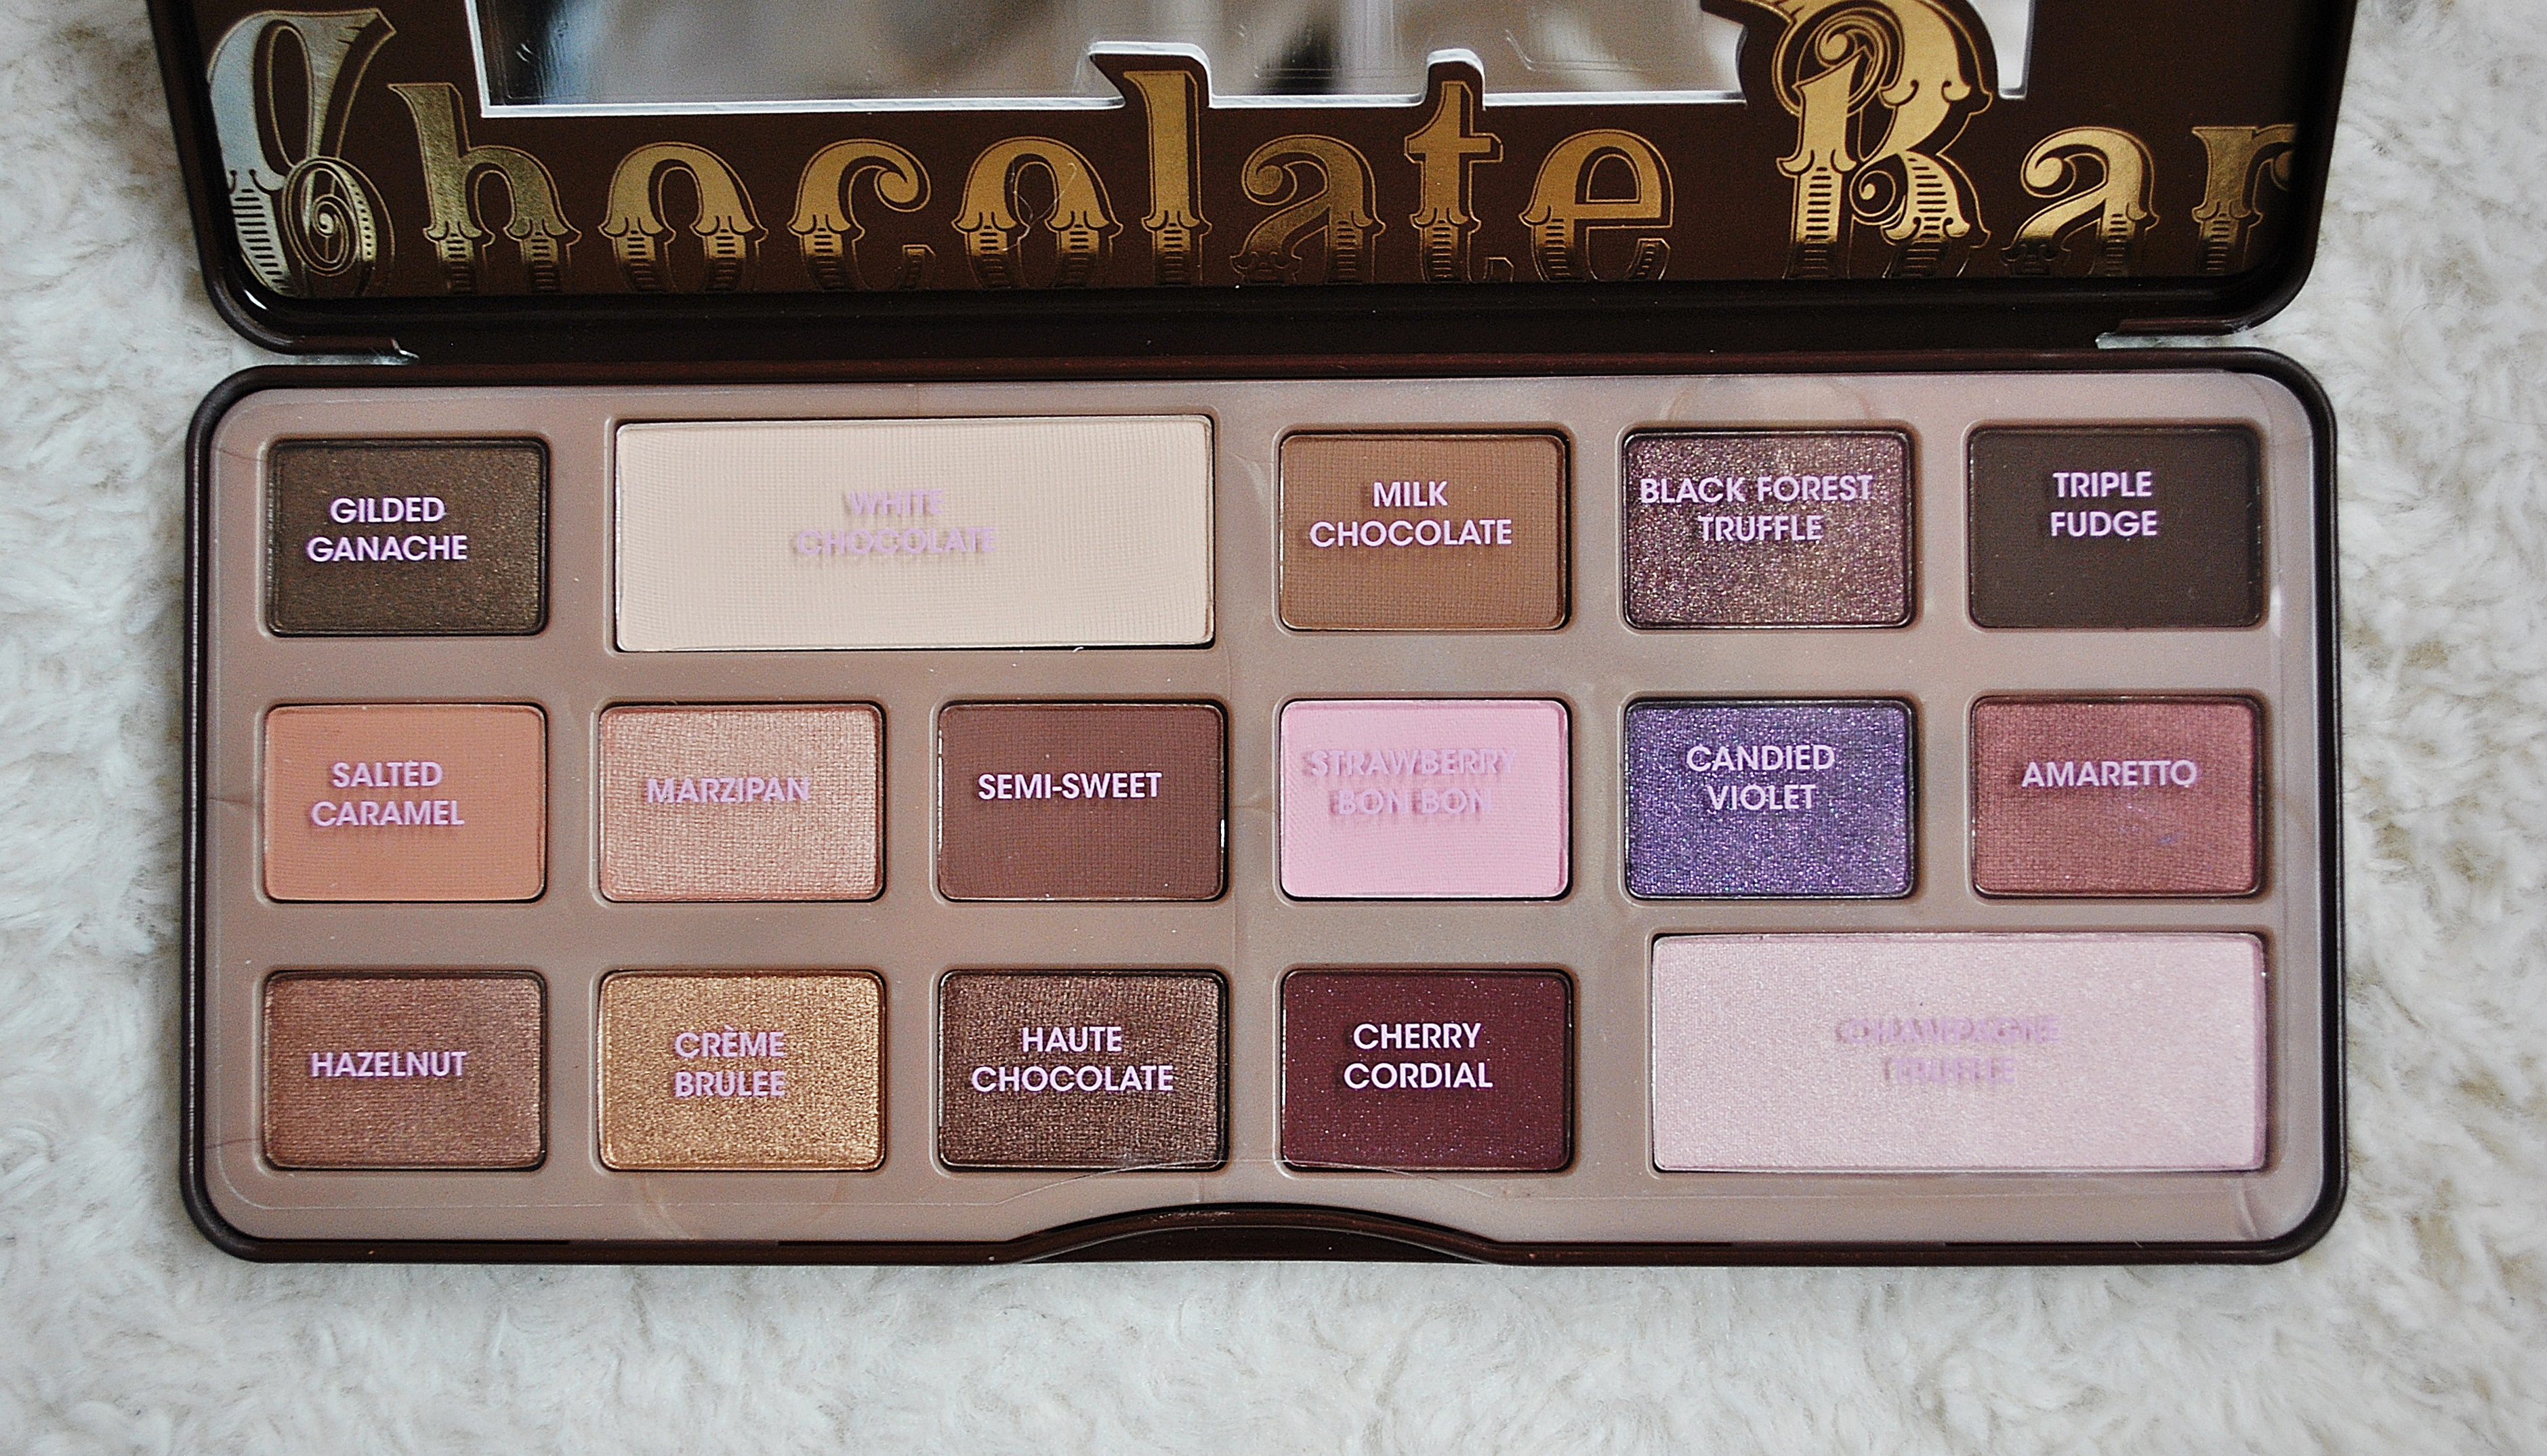 Maquillage too faced pas cher - Candy bar pas cher ...